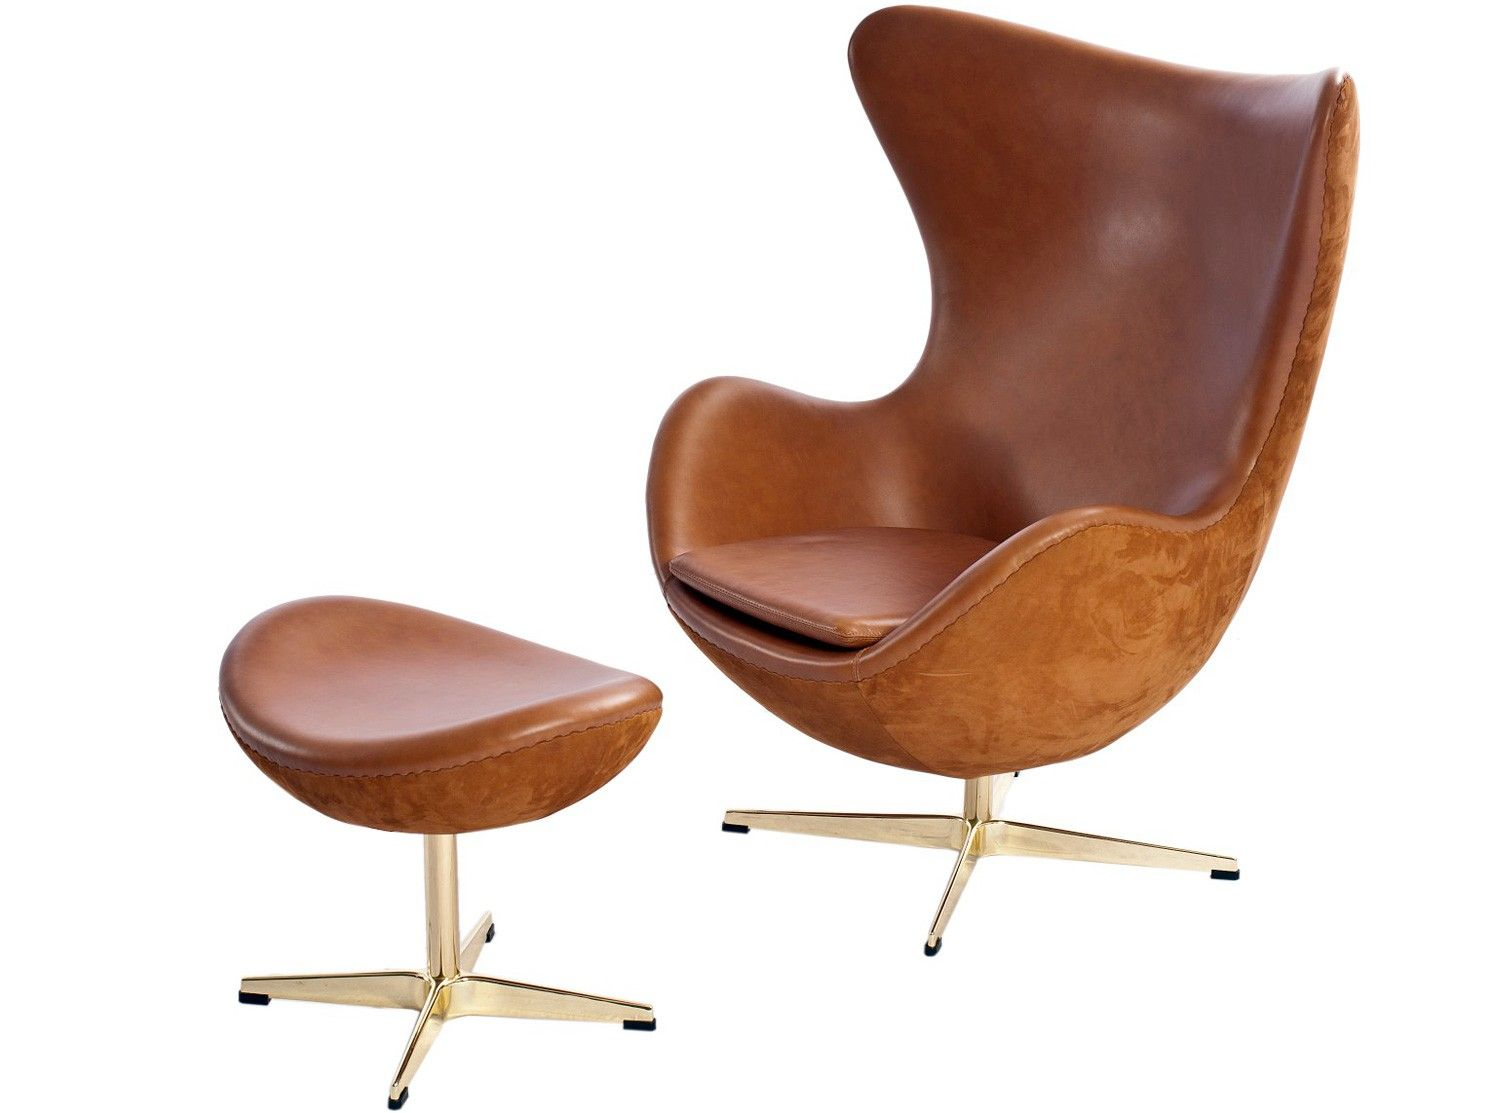 High Quality Egg Chair By Arne Jacobsen Nubuck (Anniversary Collector Replica)